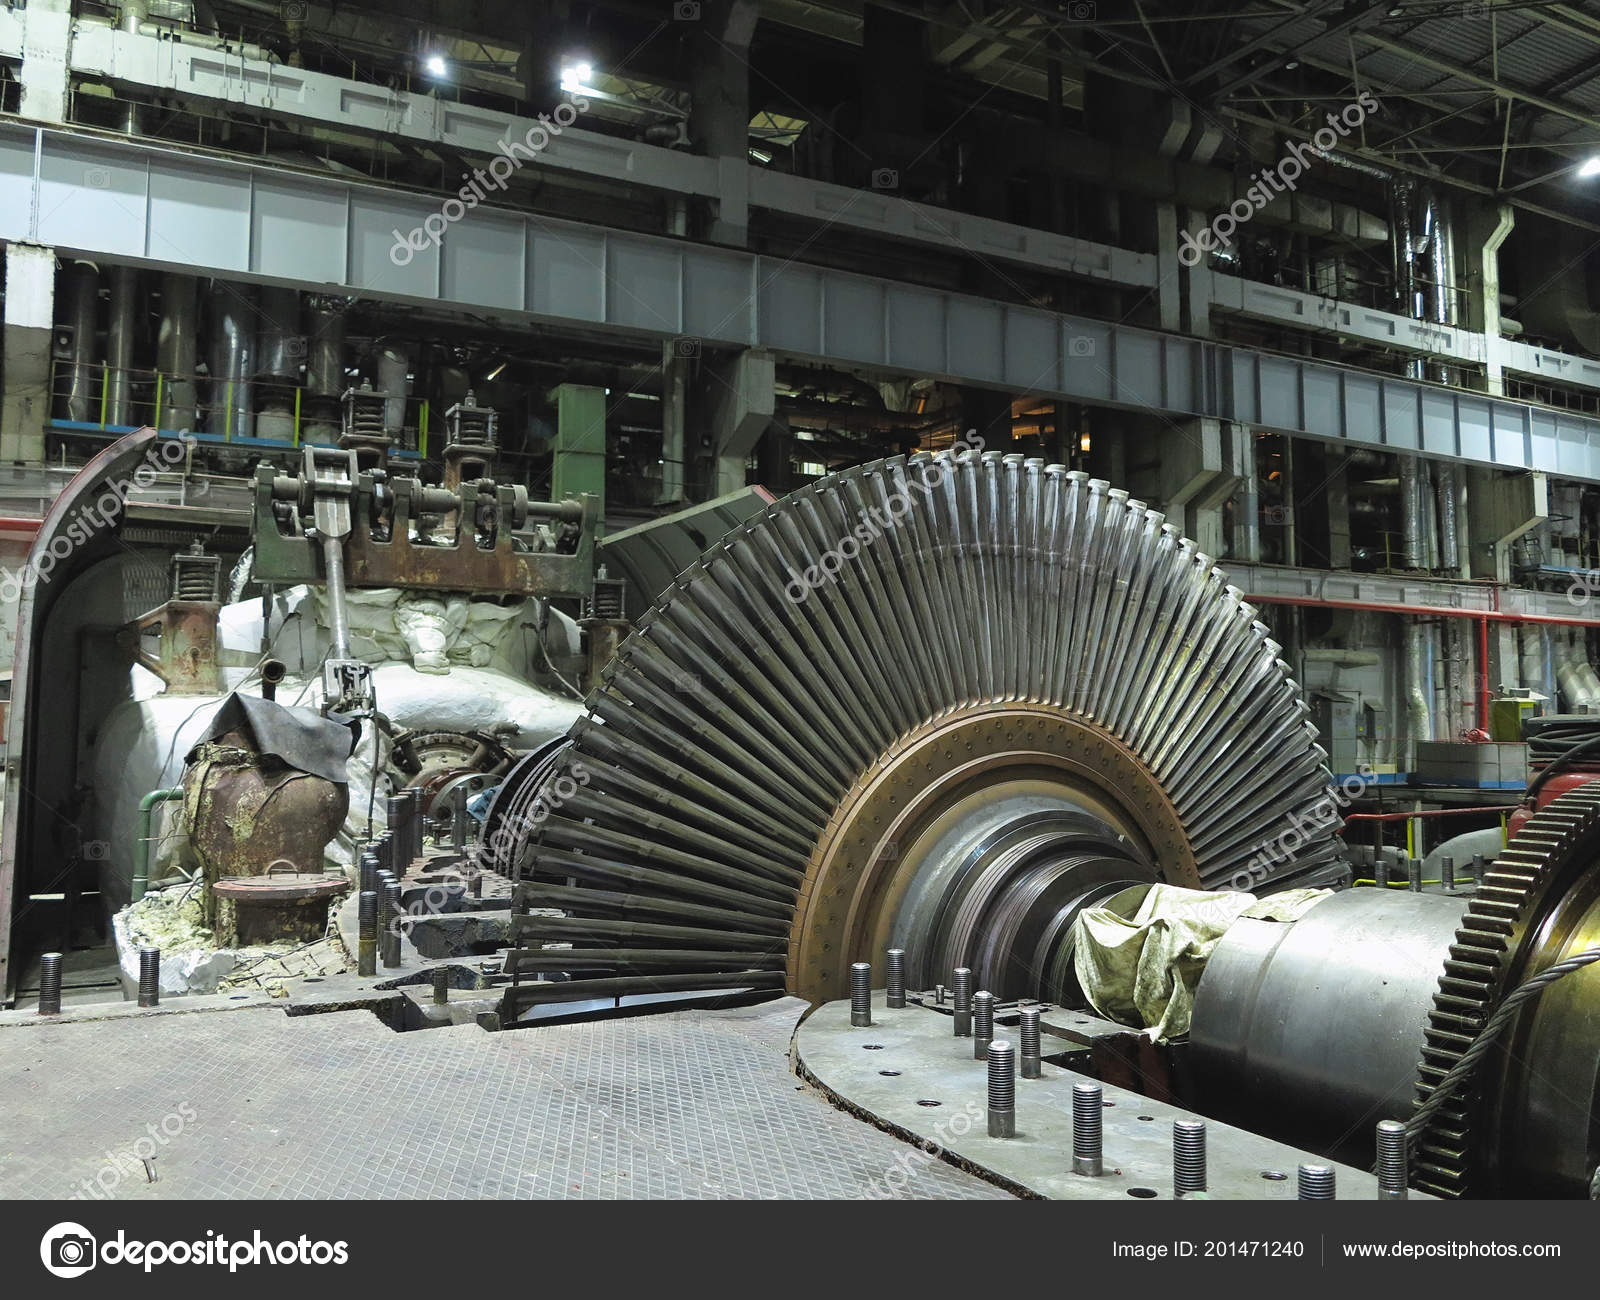 electric generator power plant early electric disassembled steam turbine in the process of repairing an electric generator at power plant photo by arogant steam turbine process repairing electric generator